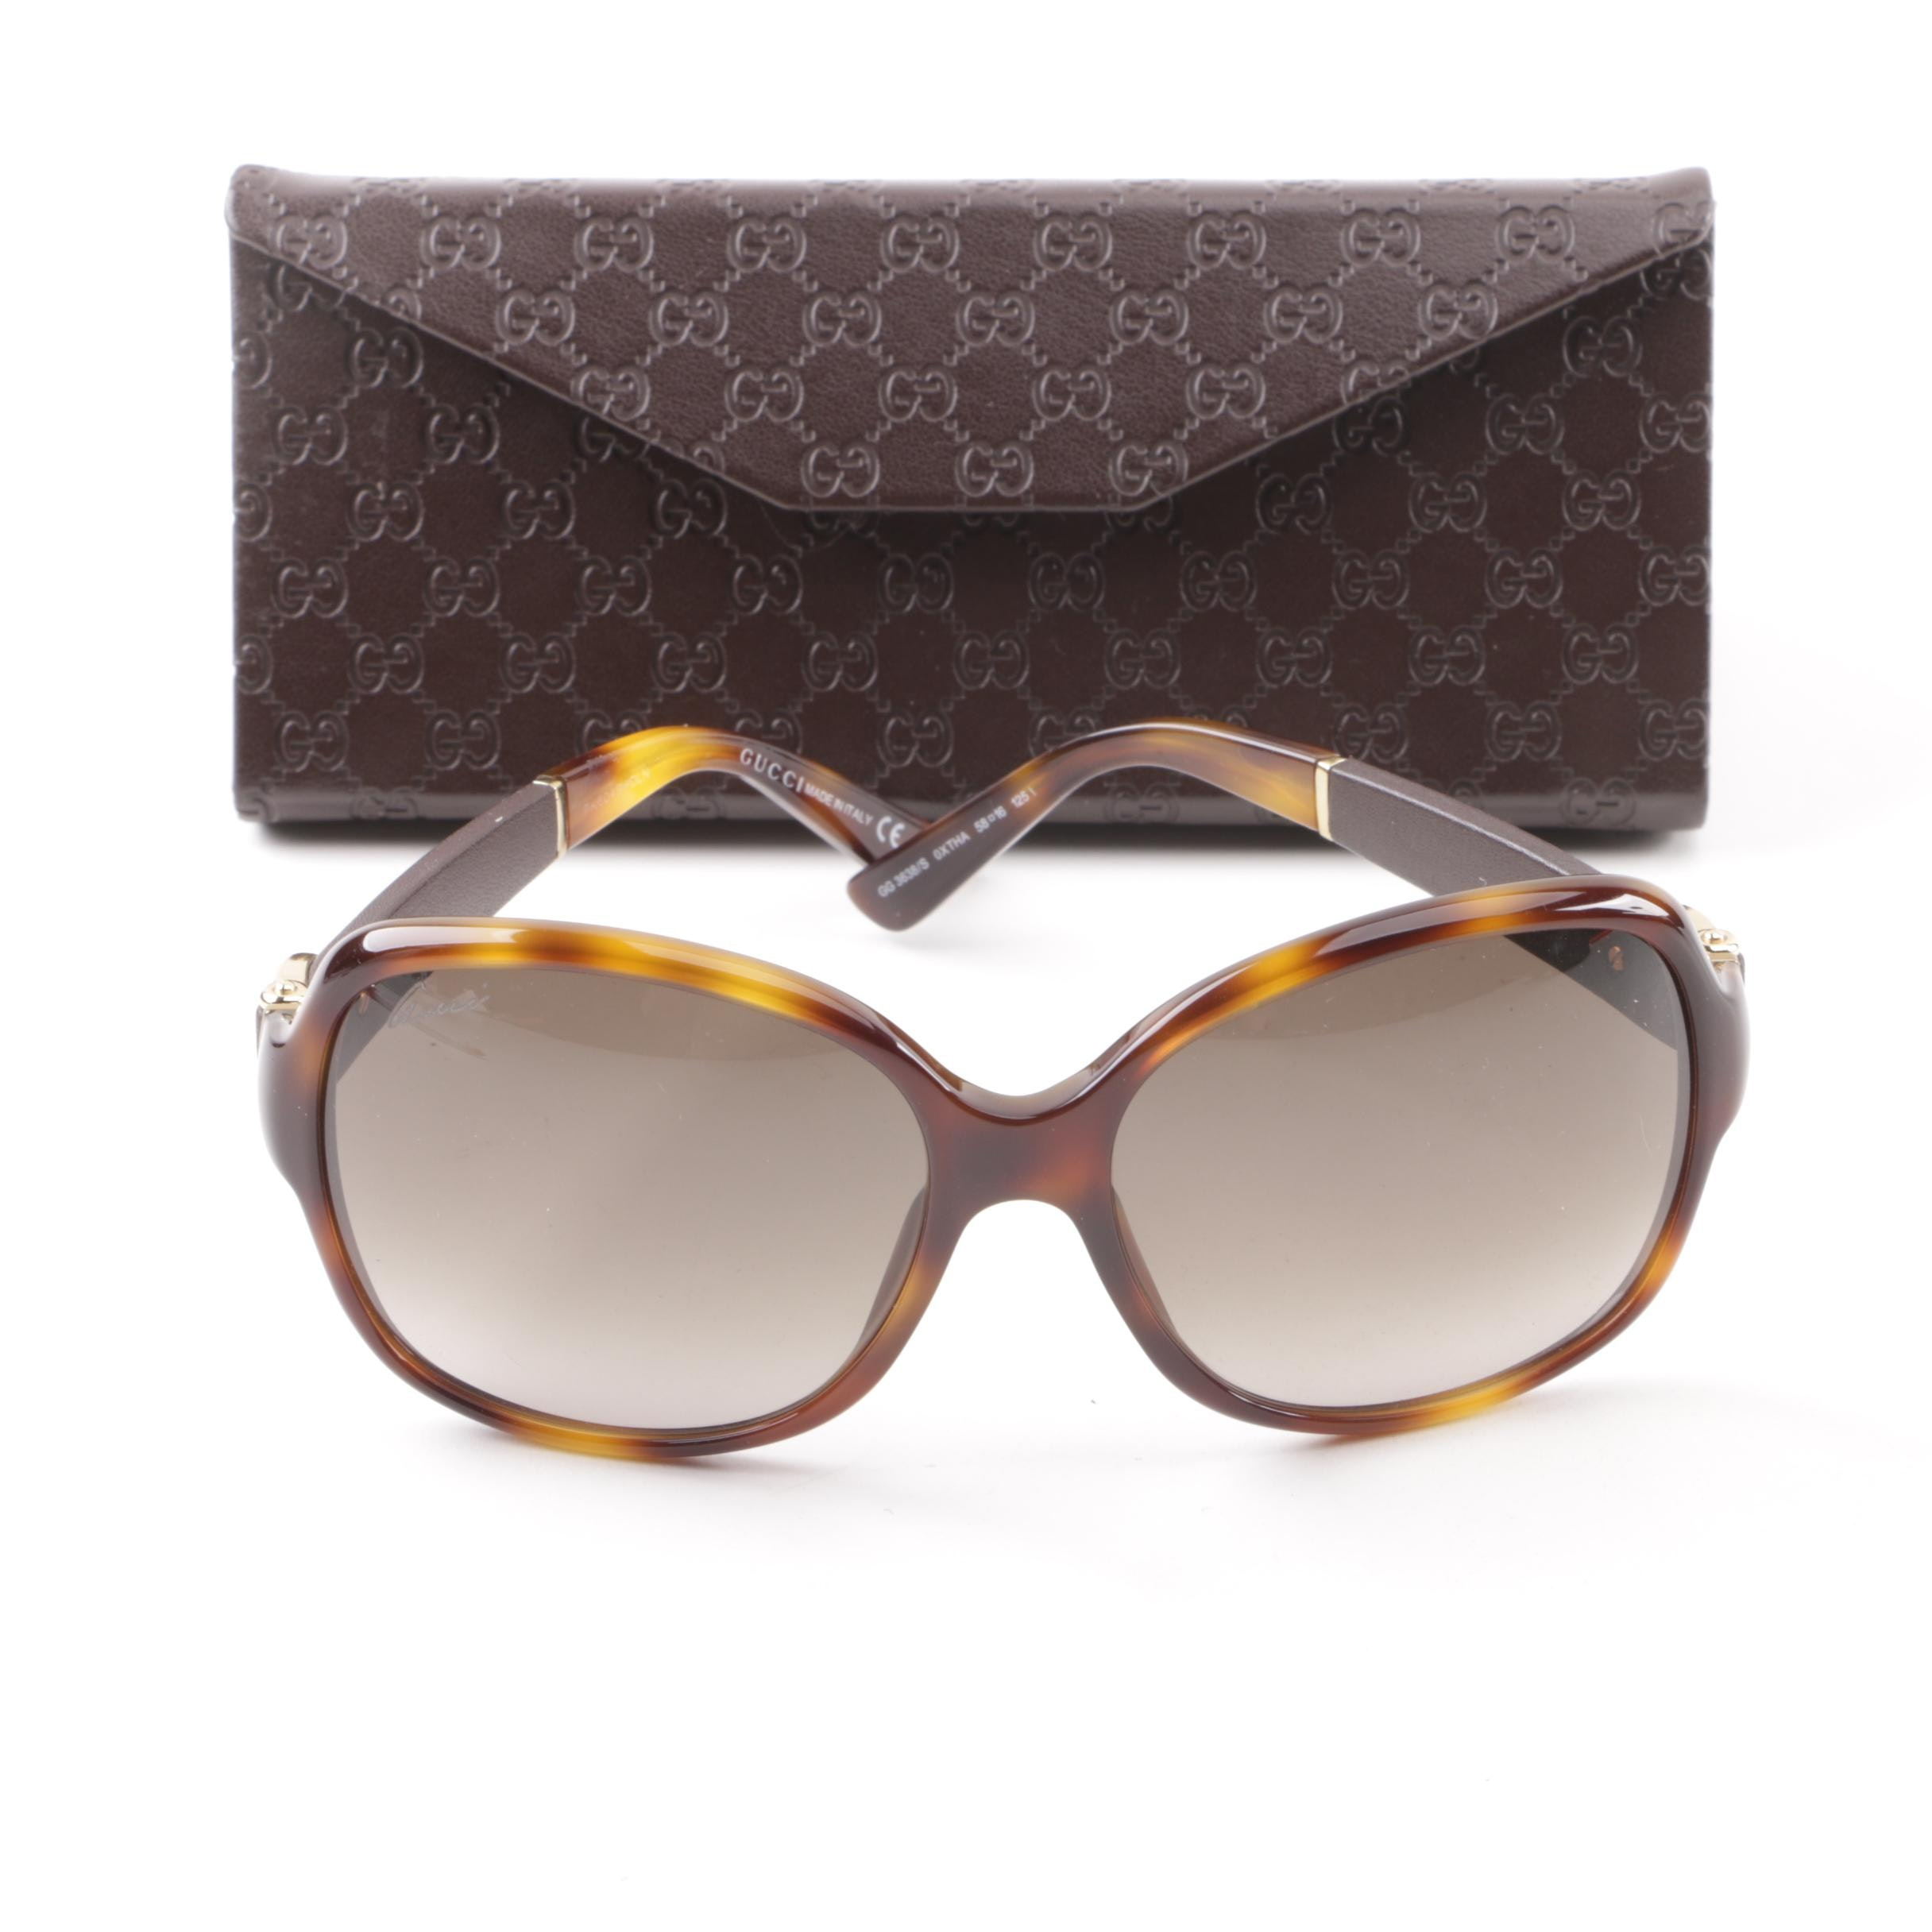 Gucci GG 3638/S Tortoiseshell Style Sunglasses with Case